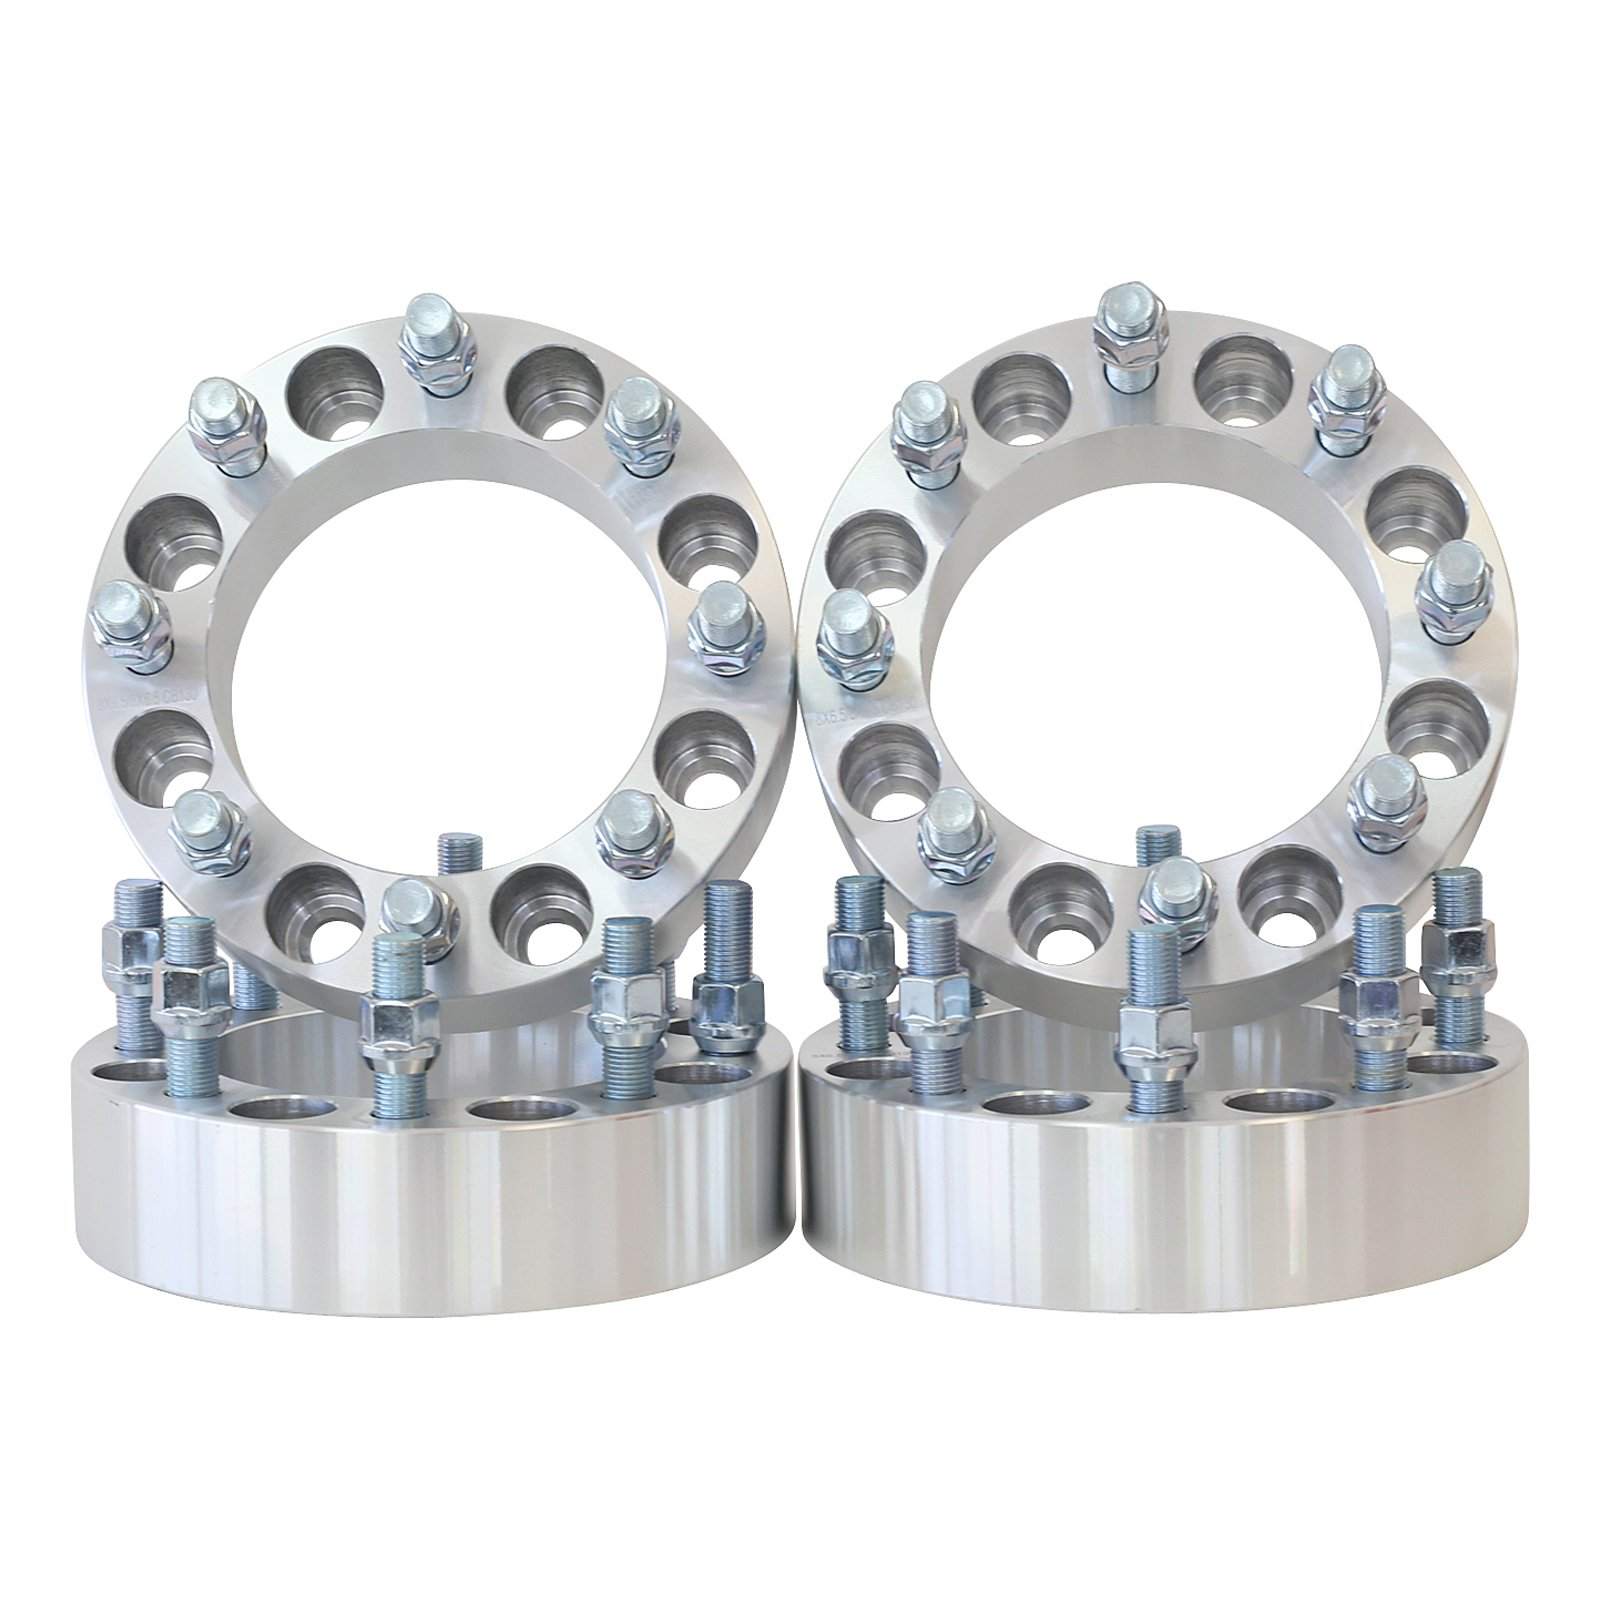 """4 8x170 8 x 170mm Wheel Spacers 1.5/"""" Fits 4WD Ford F-250 Super Duty PowerStroke"""